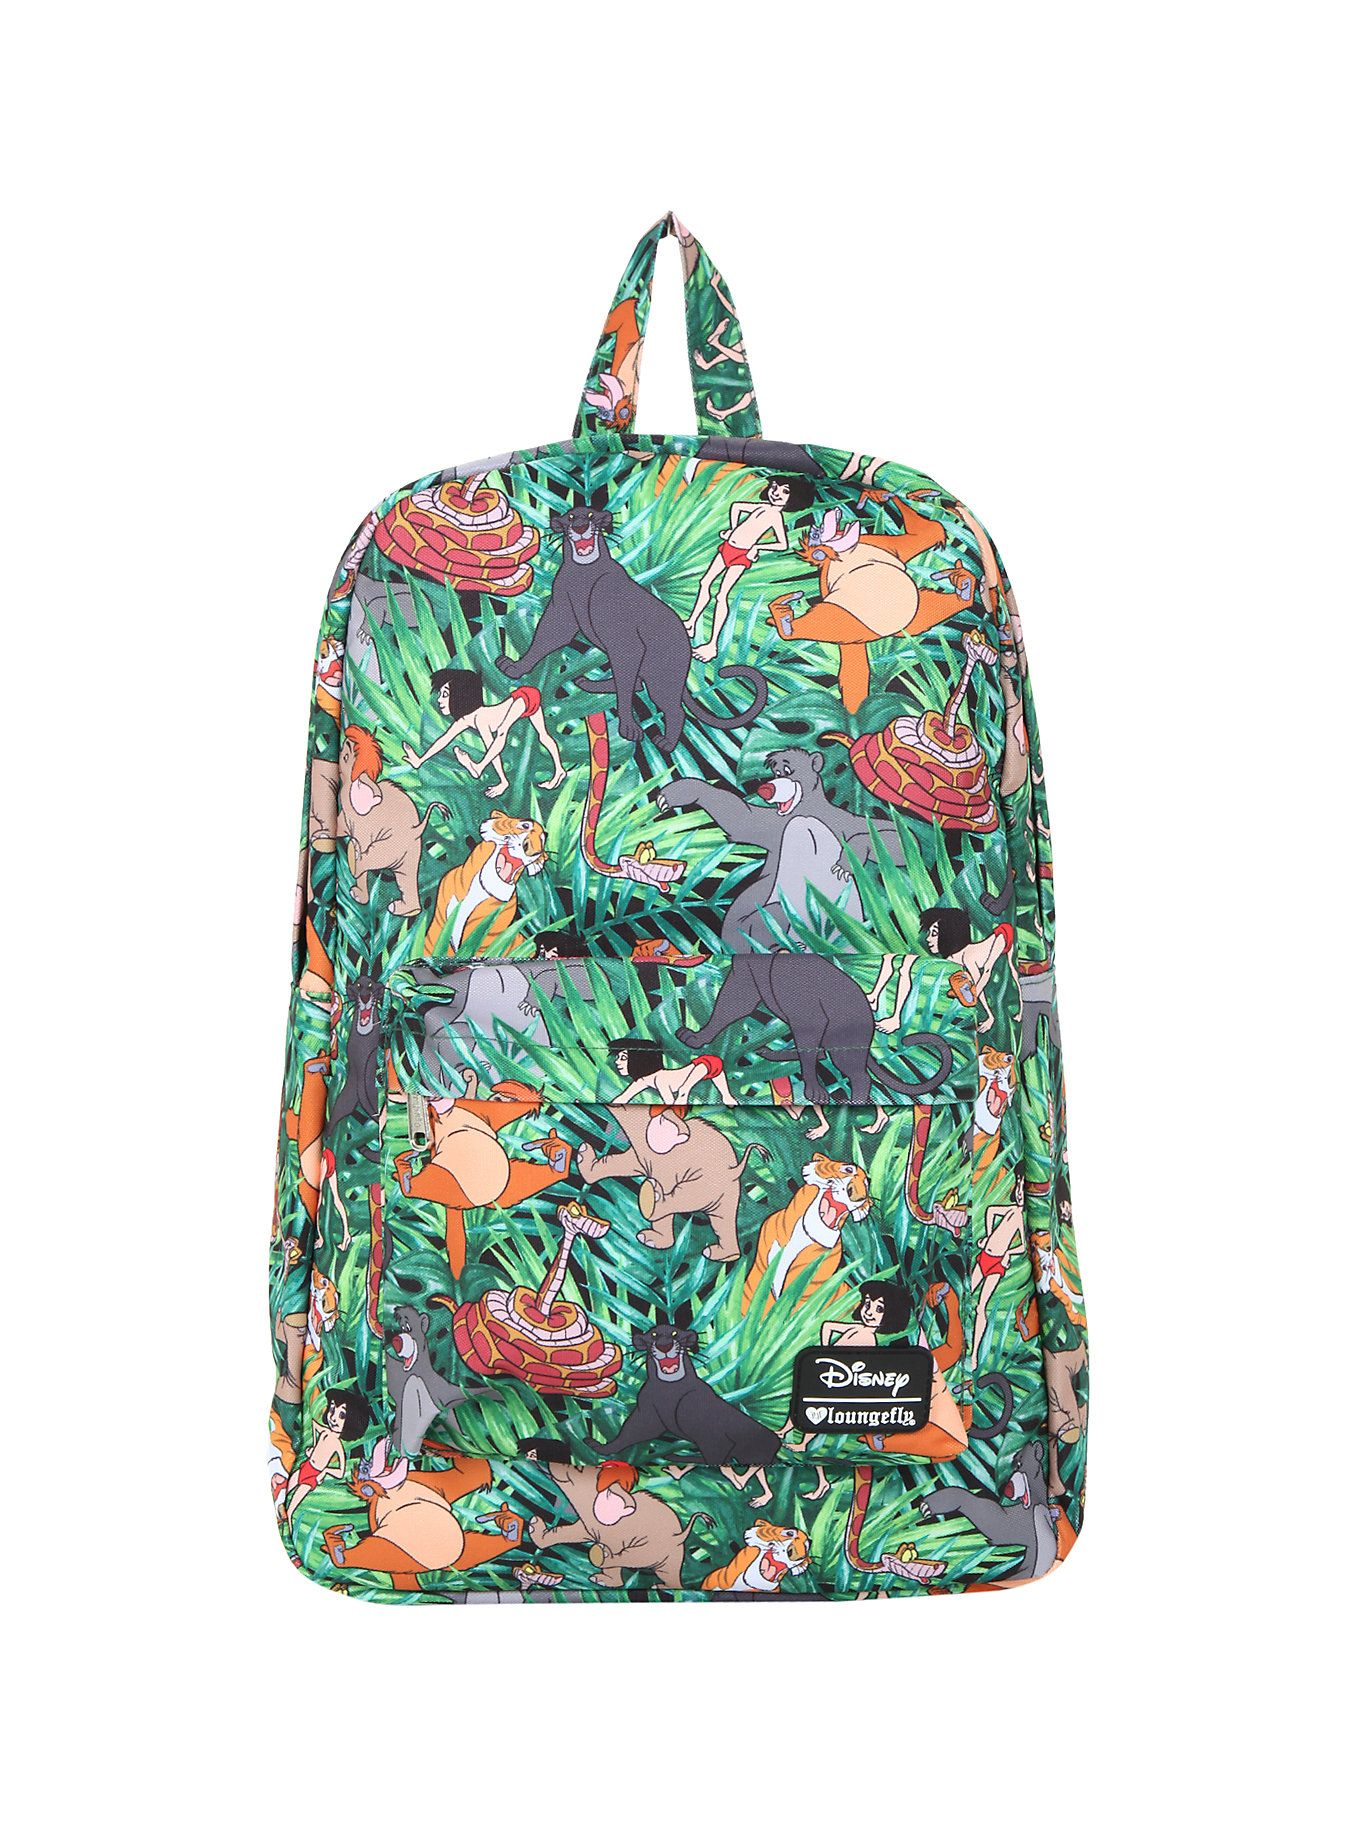 721c9d6e626 Loungefly Disney The Jungle Book Print Backpack